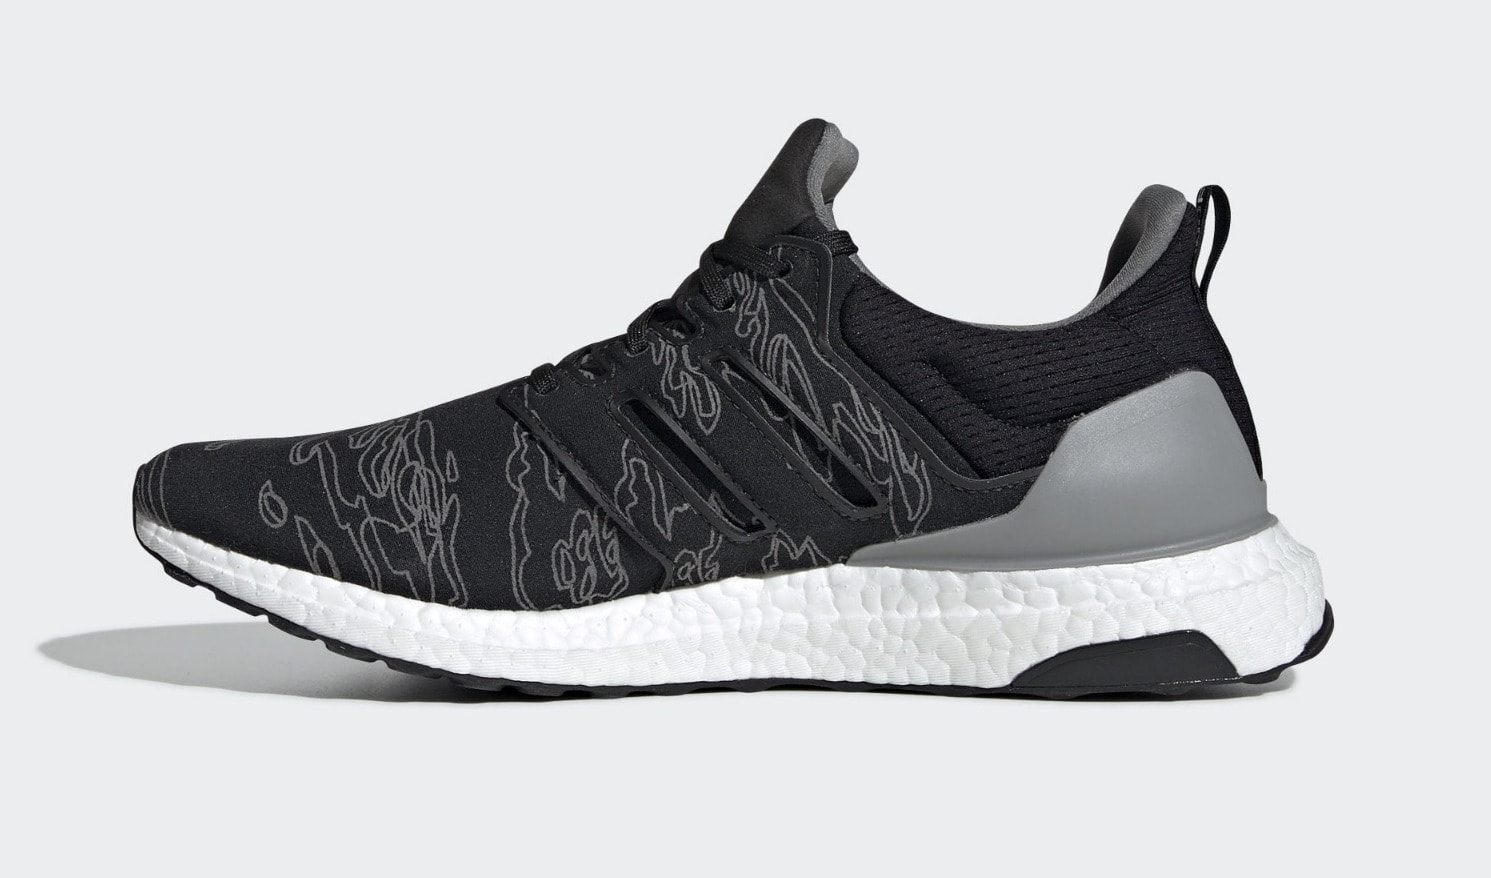 960dfb2a407c Undefeated x adidas Ultra Boost Release Date  Coming Soon Price   220.  Color  Core Black Core Black Style Code  BC0472